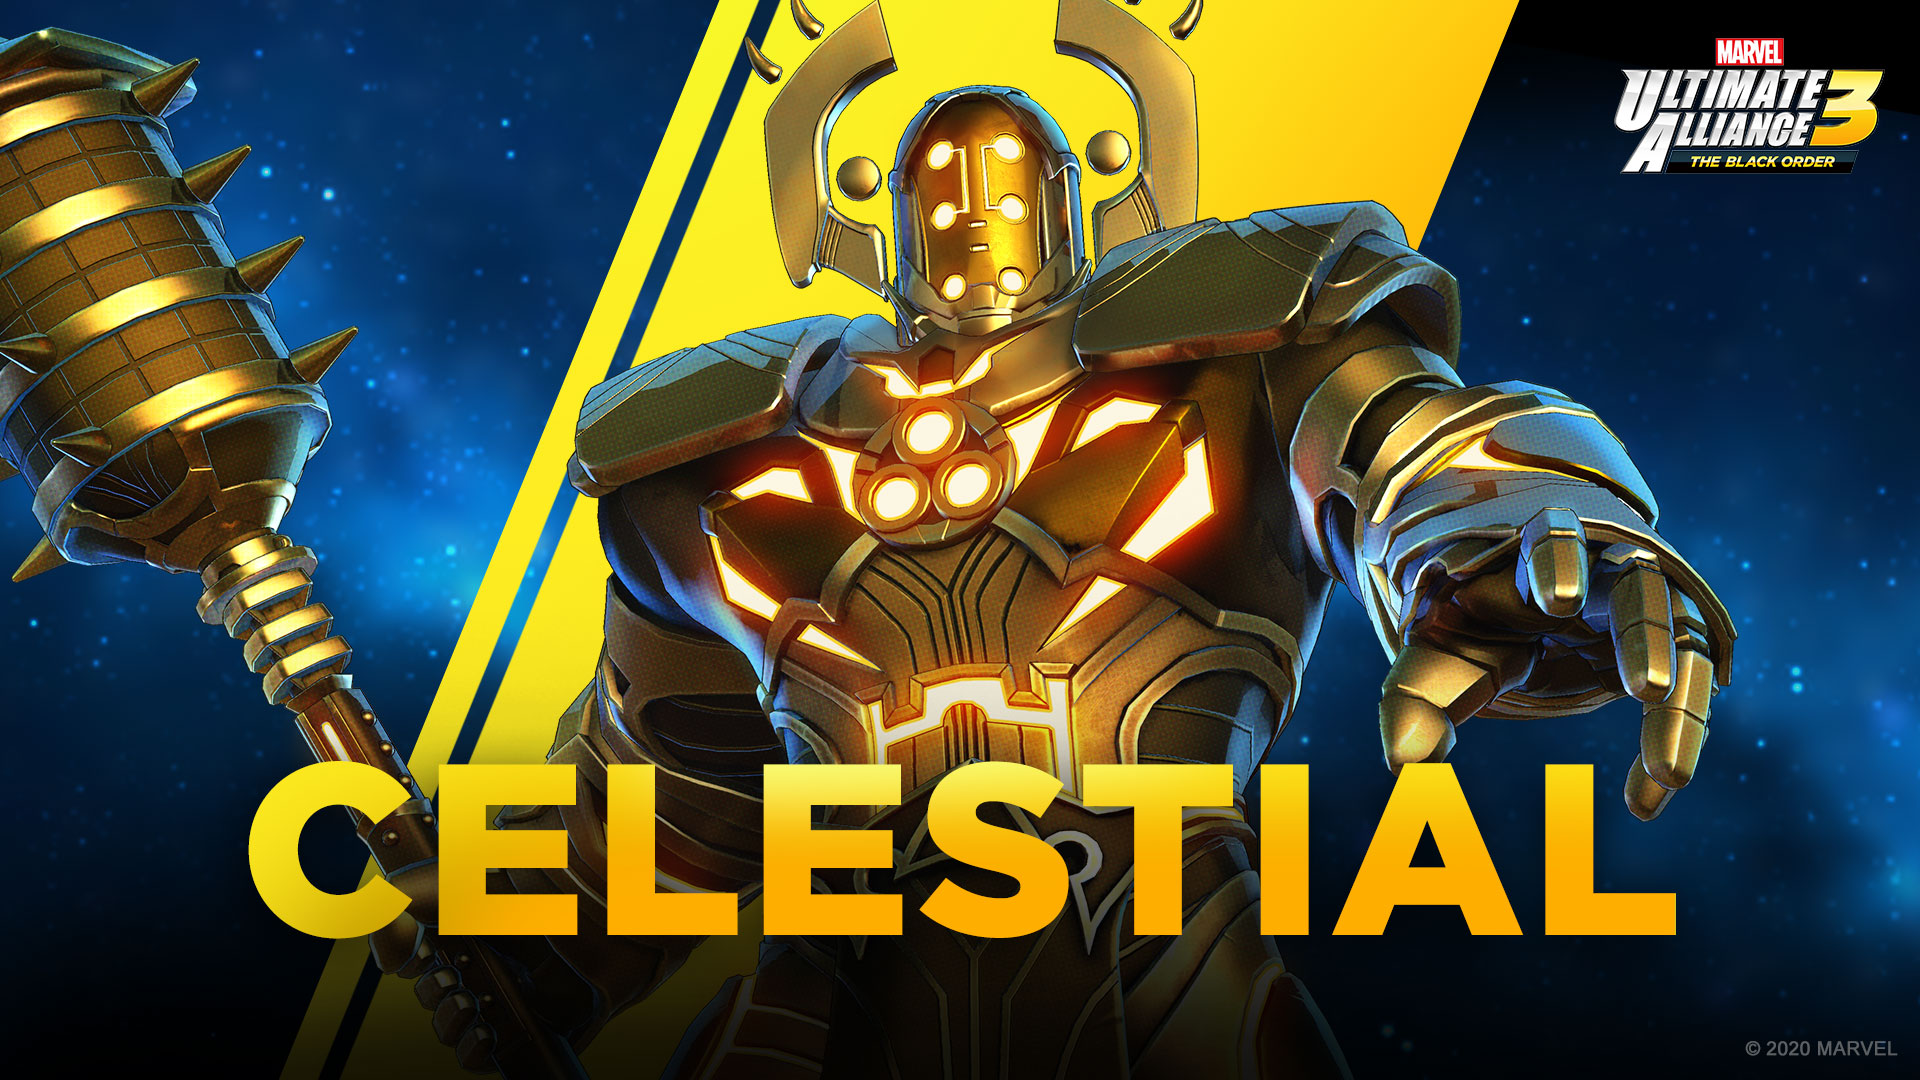 Celestials To Be A Part Of Marvel Ultimate Alliance 3 The Black